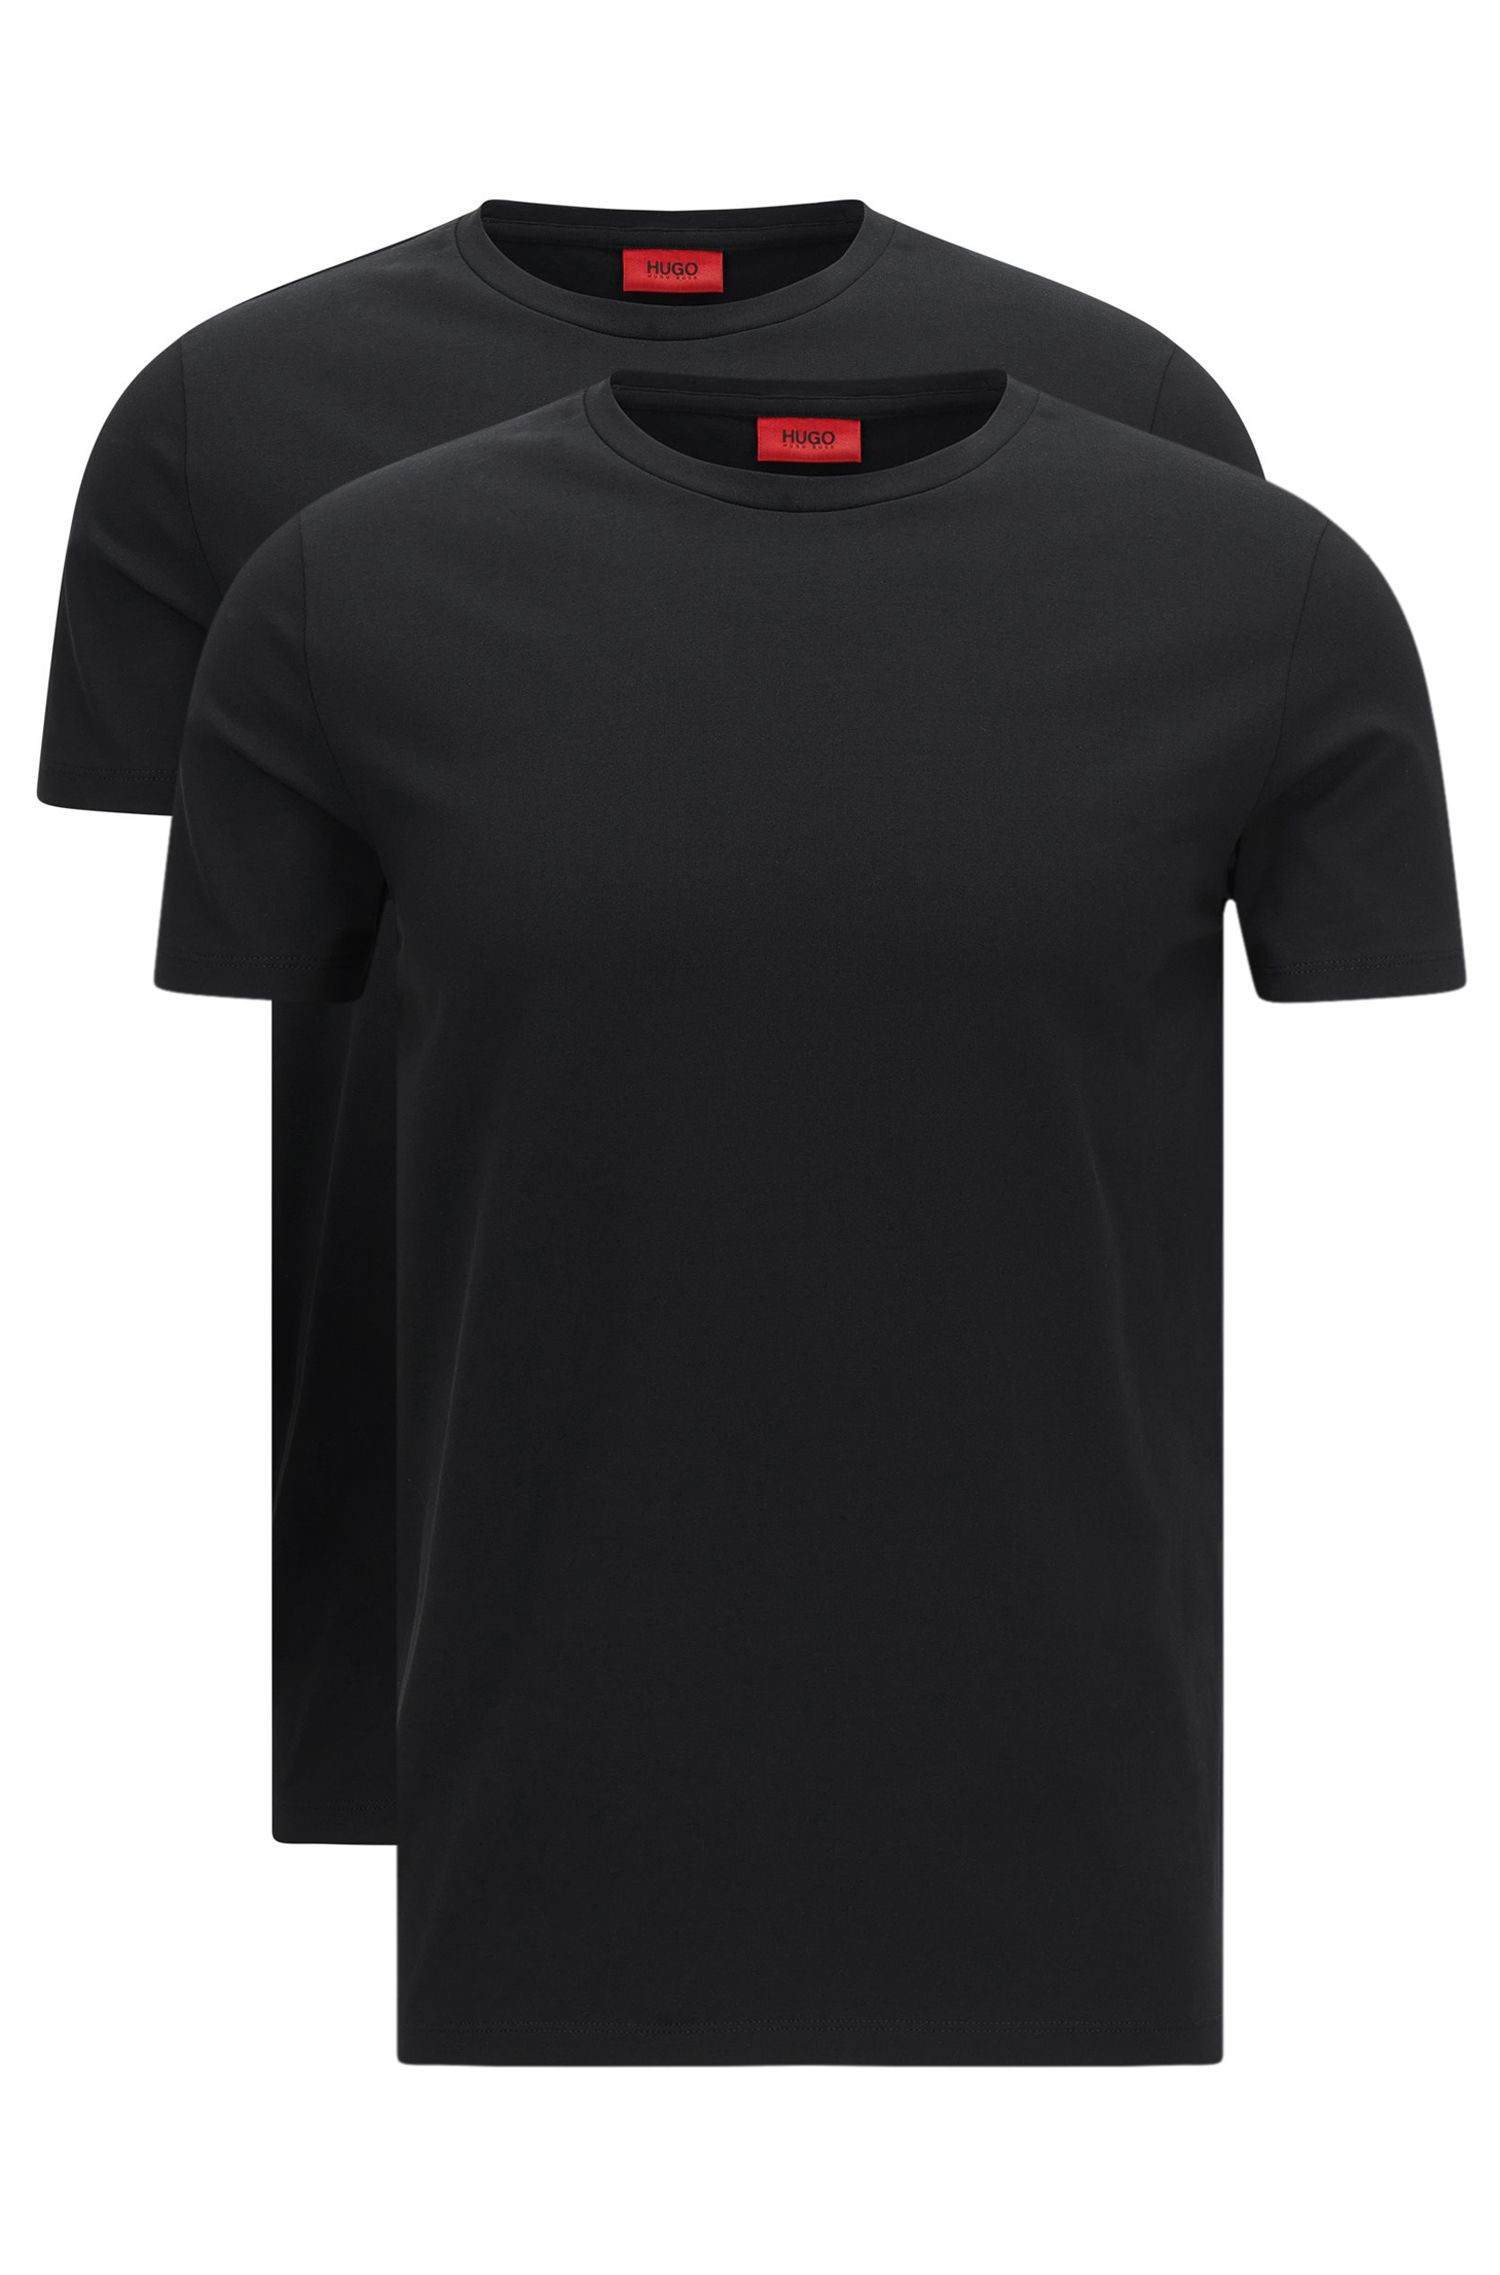 "Doppelpack Regular-Fit T-Shirt aus Stretch-Baumwolle: ""HUGO-Round"""